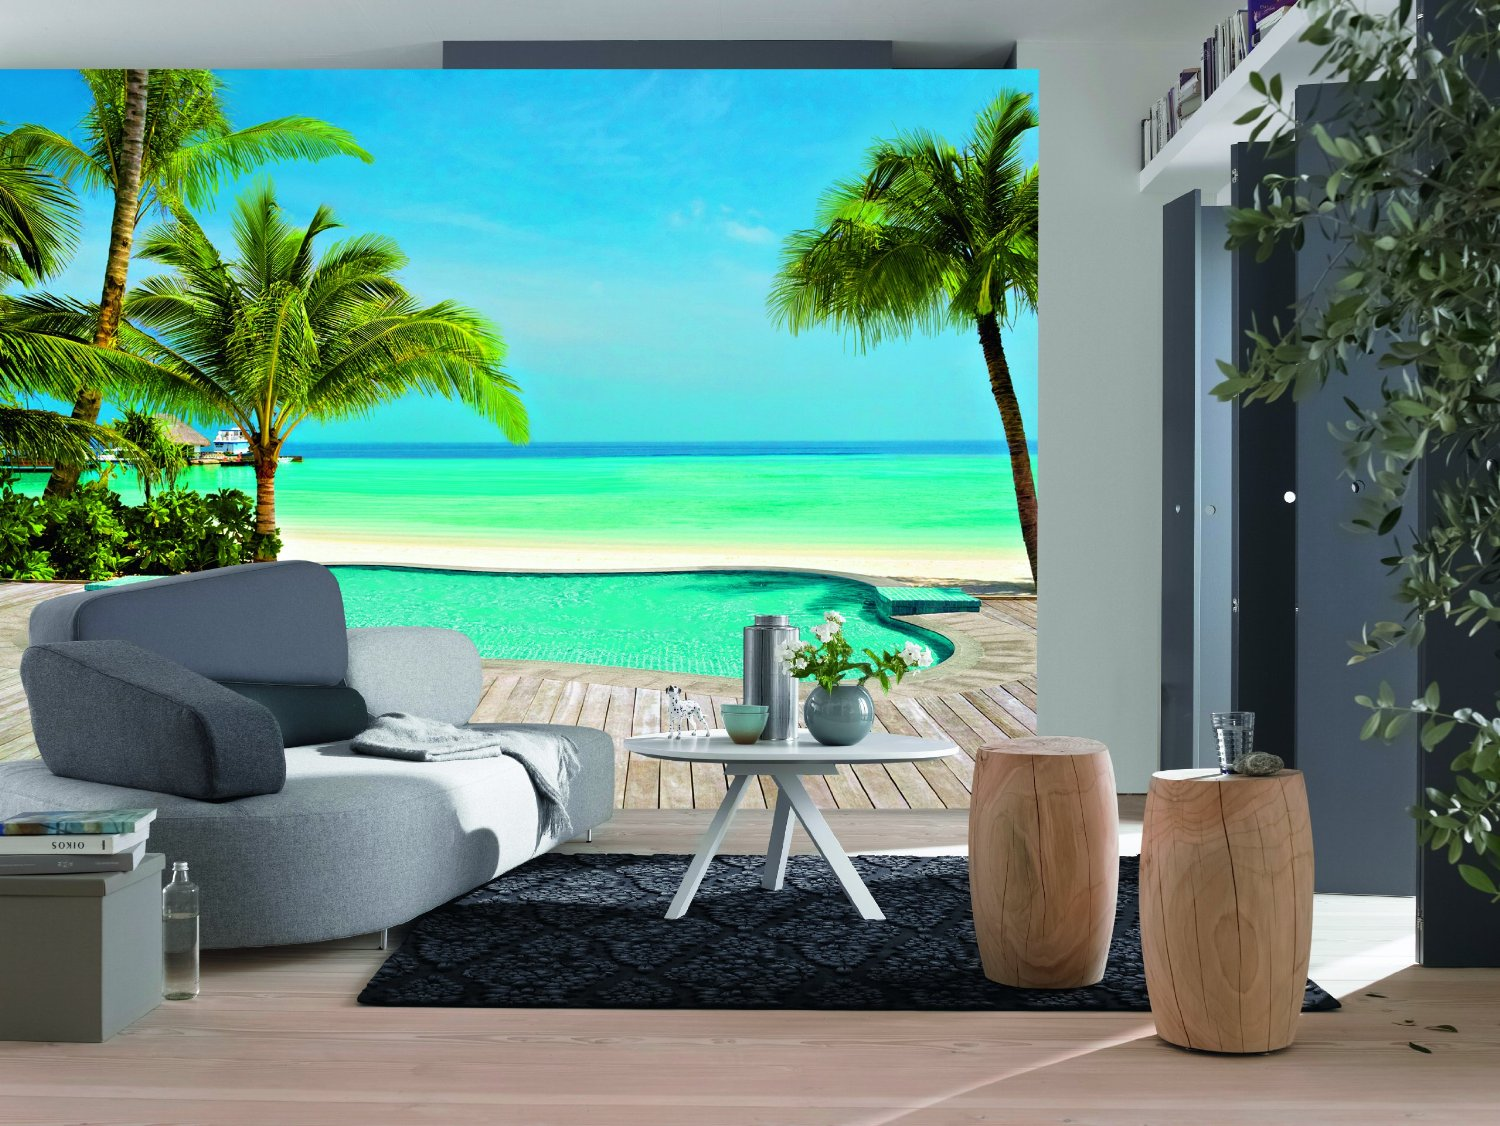 Pool Wall Mural DM127 Full Size Large Wall Murals The